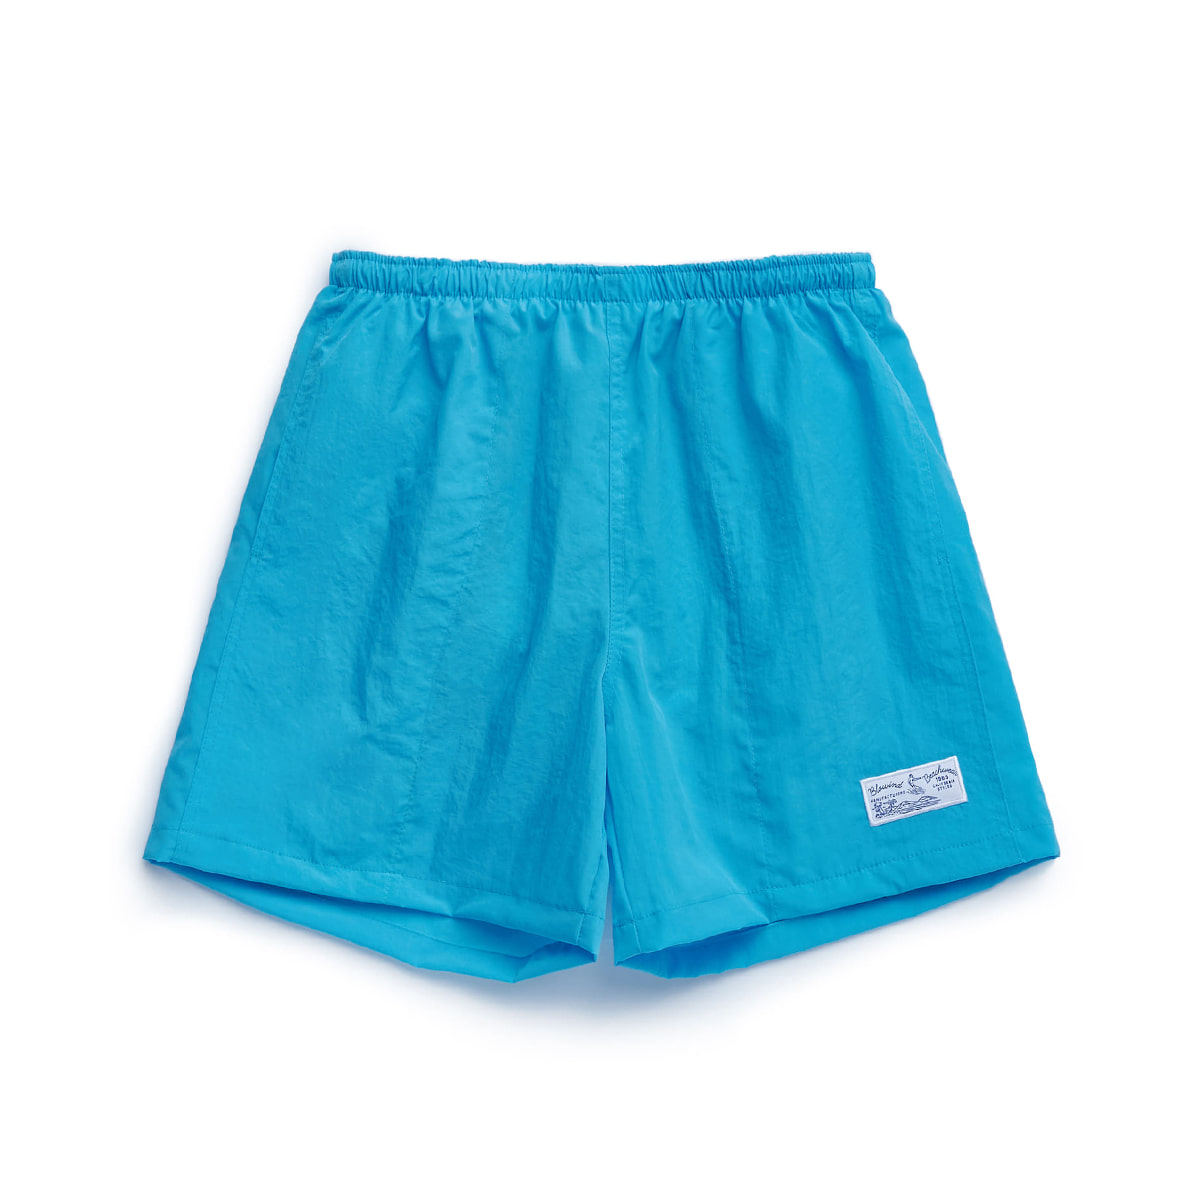 [BLOWIND] RESORT SHORTS 'TEAL'